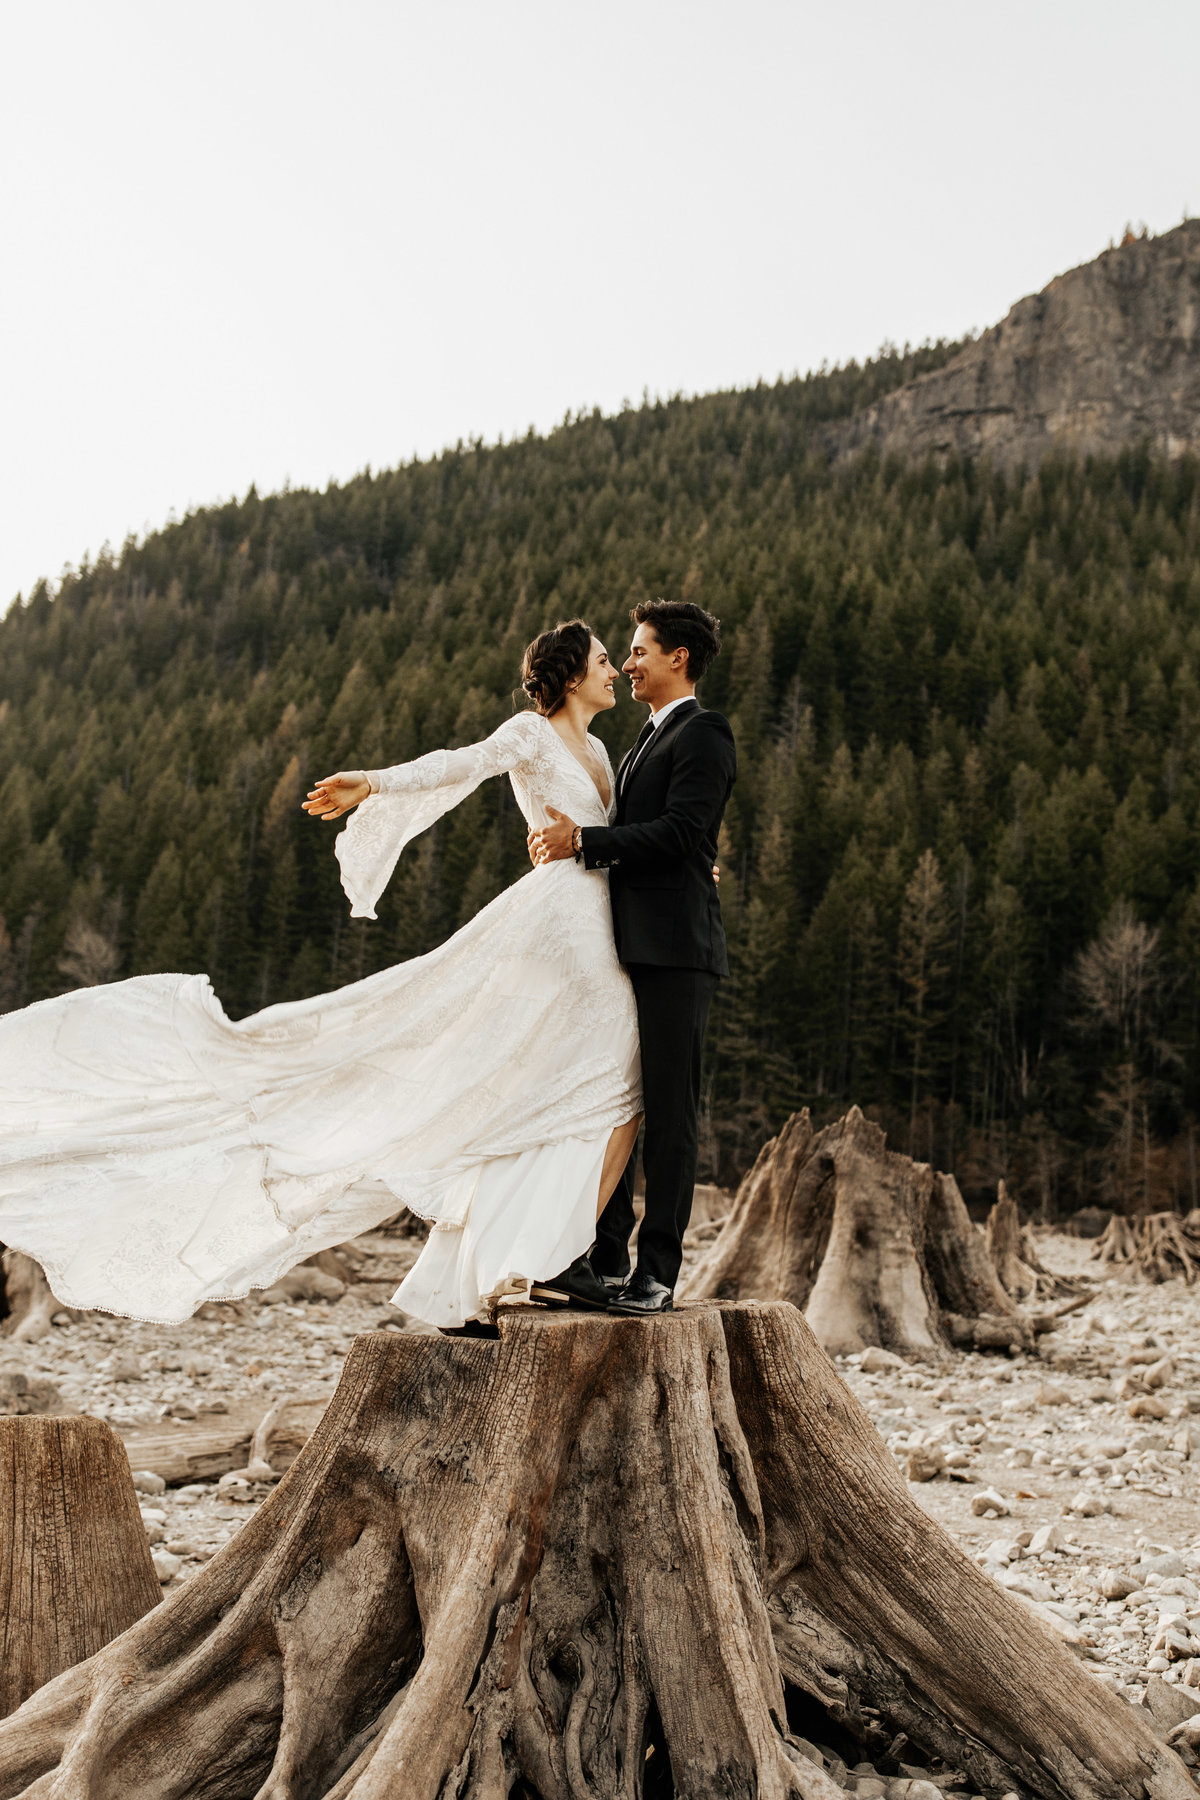 married couple standing on log kissing